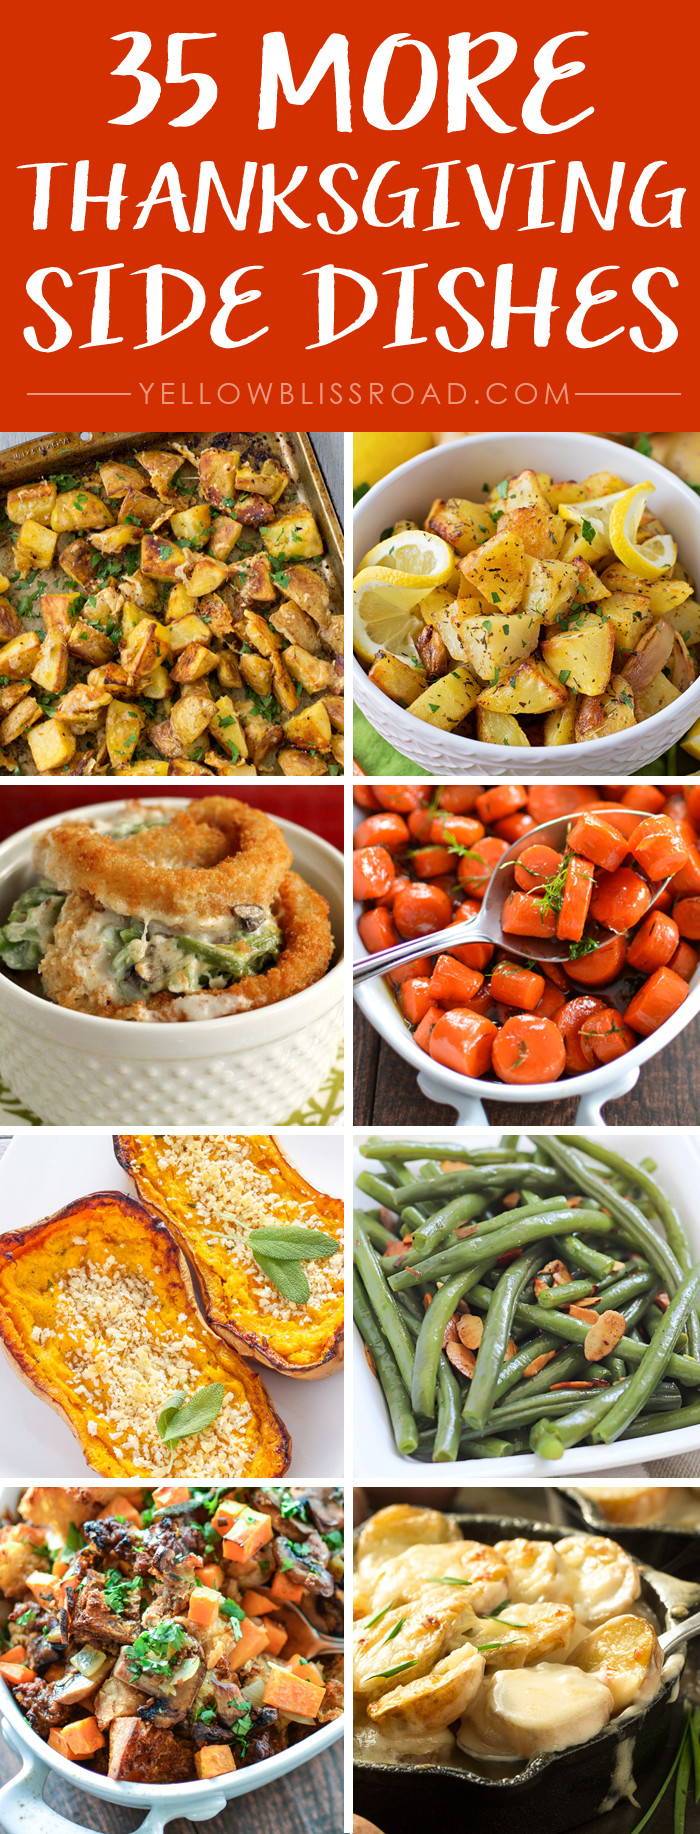 Thanksgiving Dinner Side Dishes  Twice Baked Potato Casserole with Potato Chip Crust